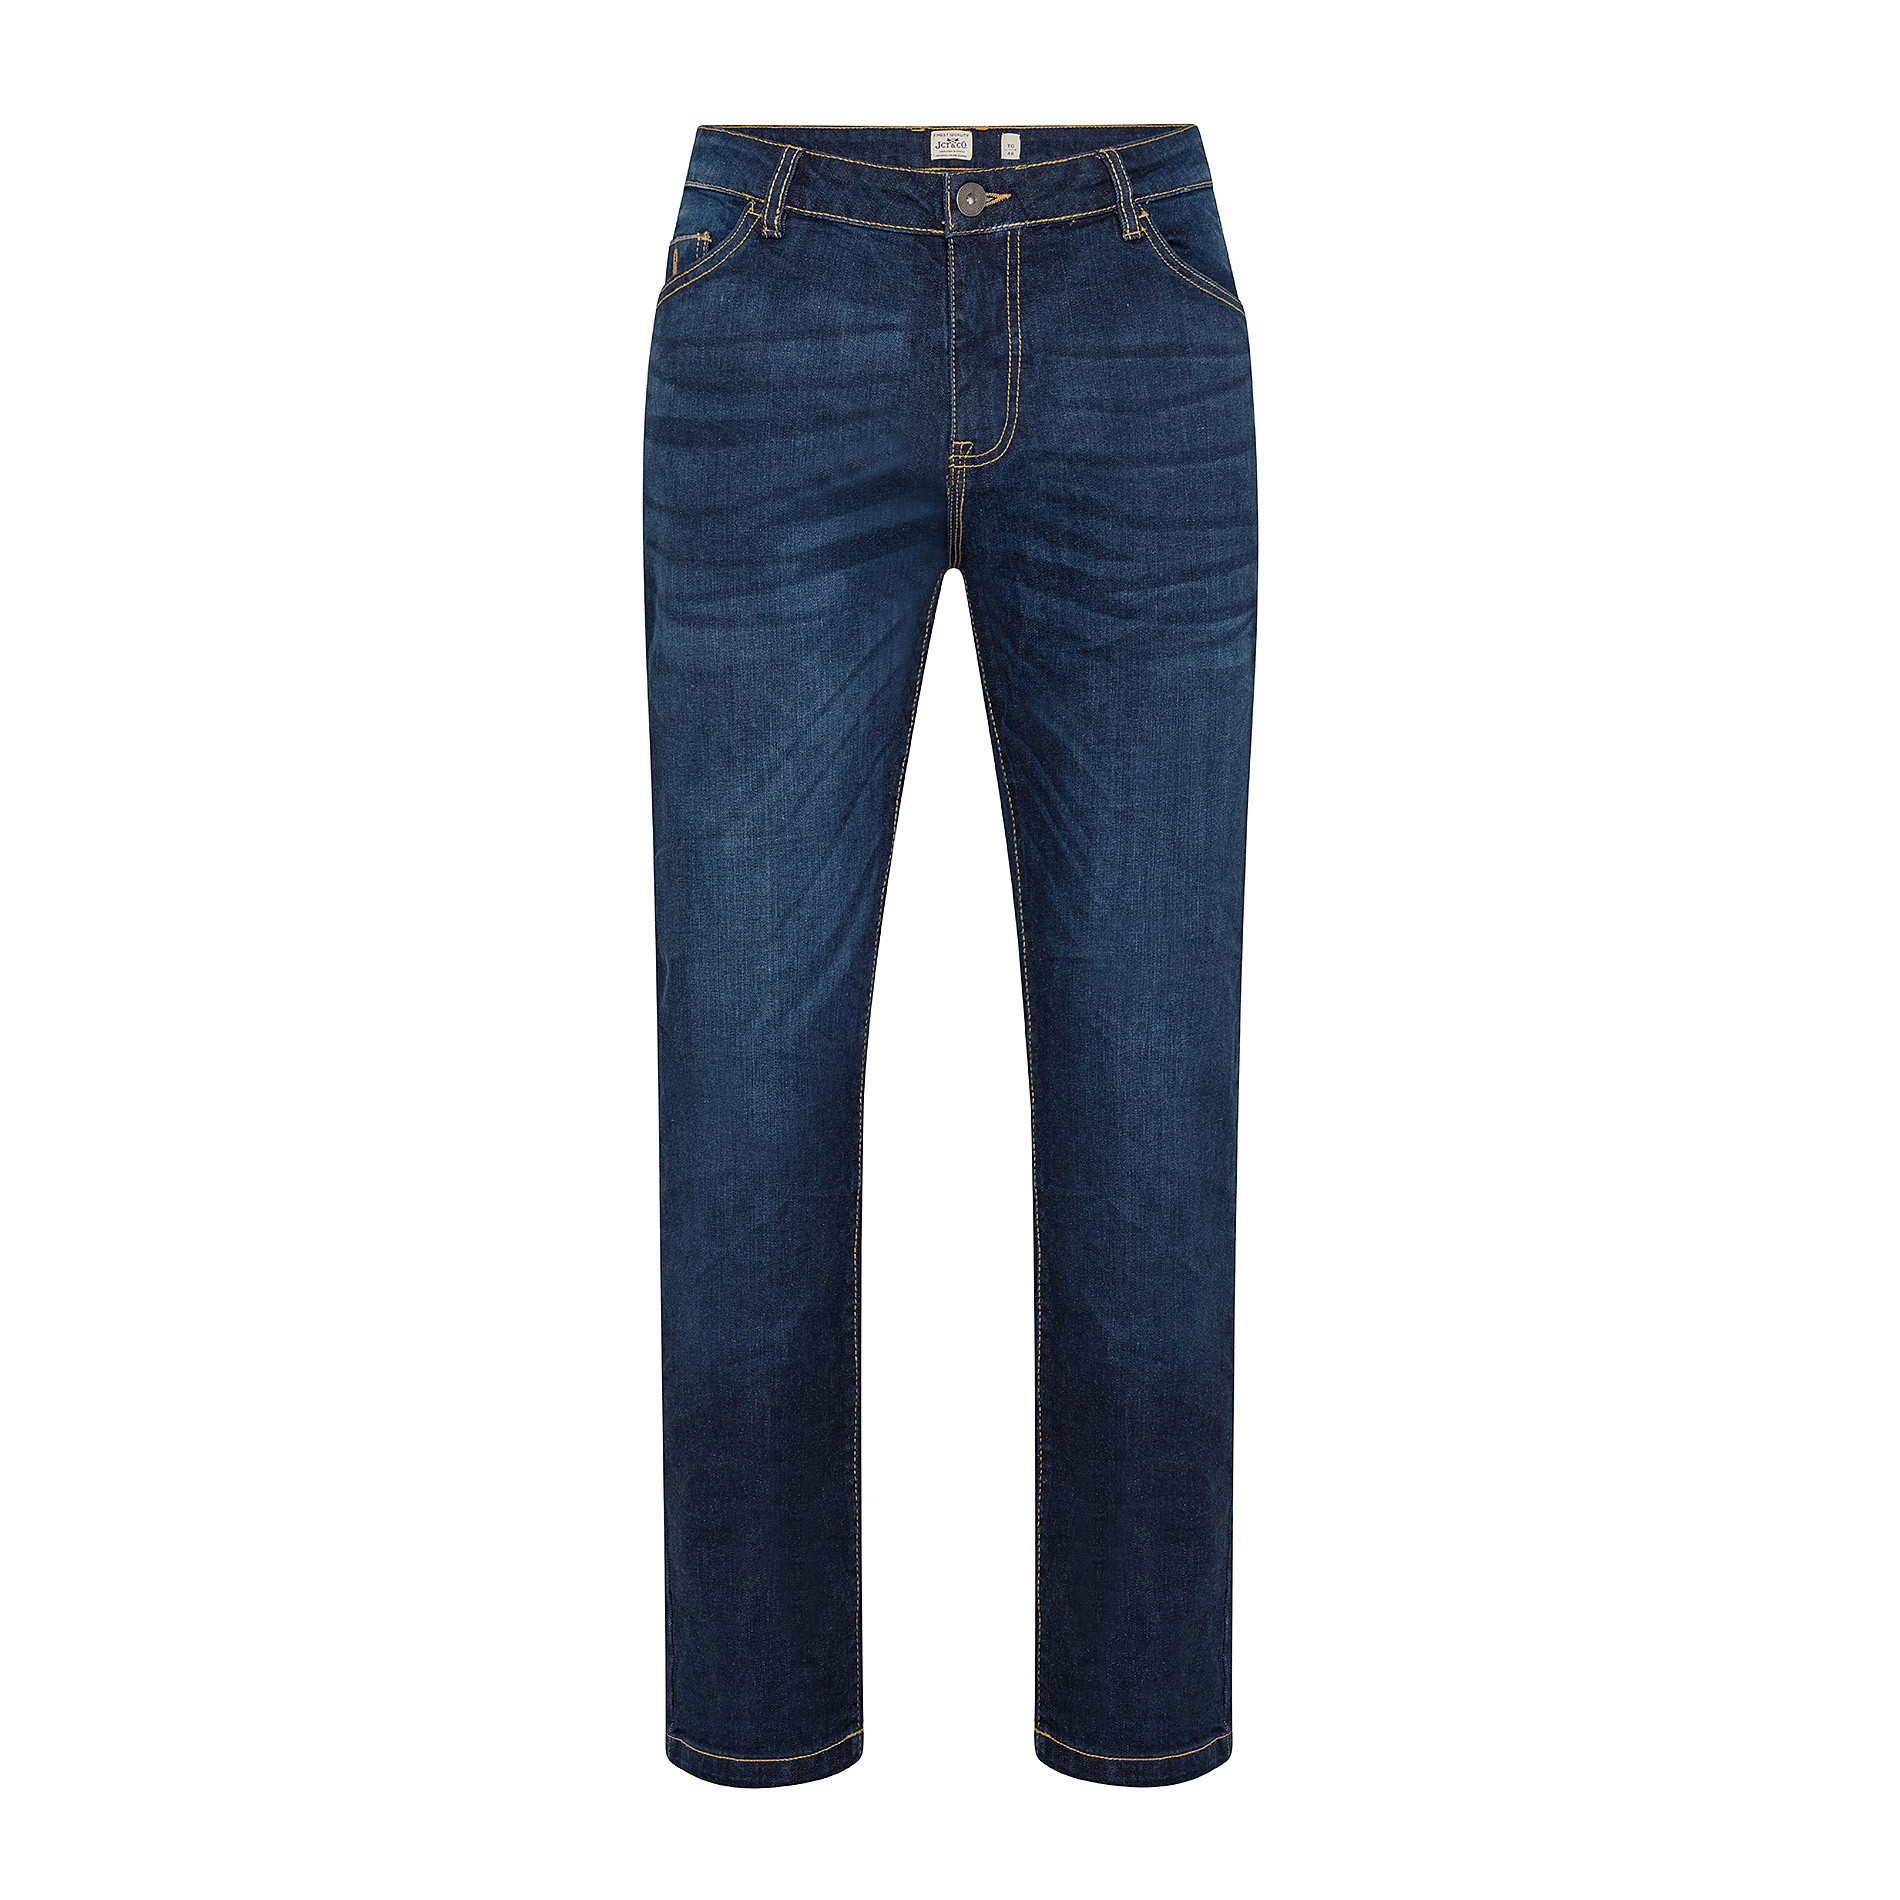 Jeans stretch 5 tasche JCT, Blu scuro, large image number 0